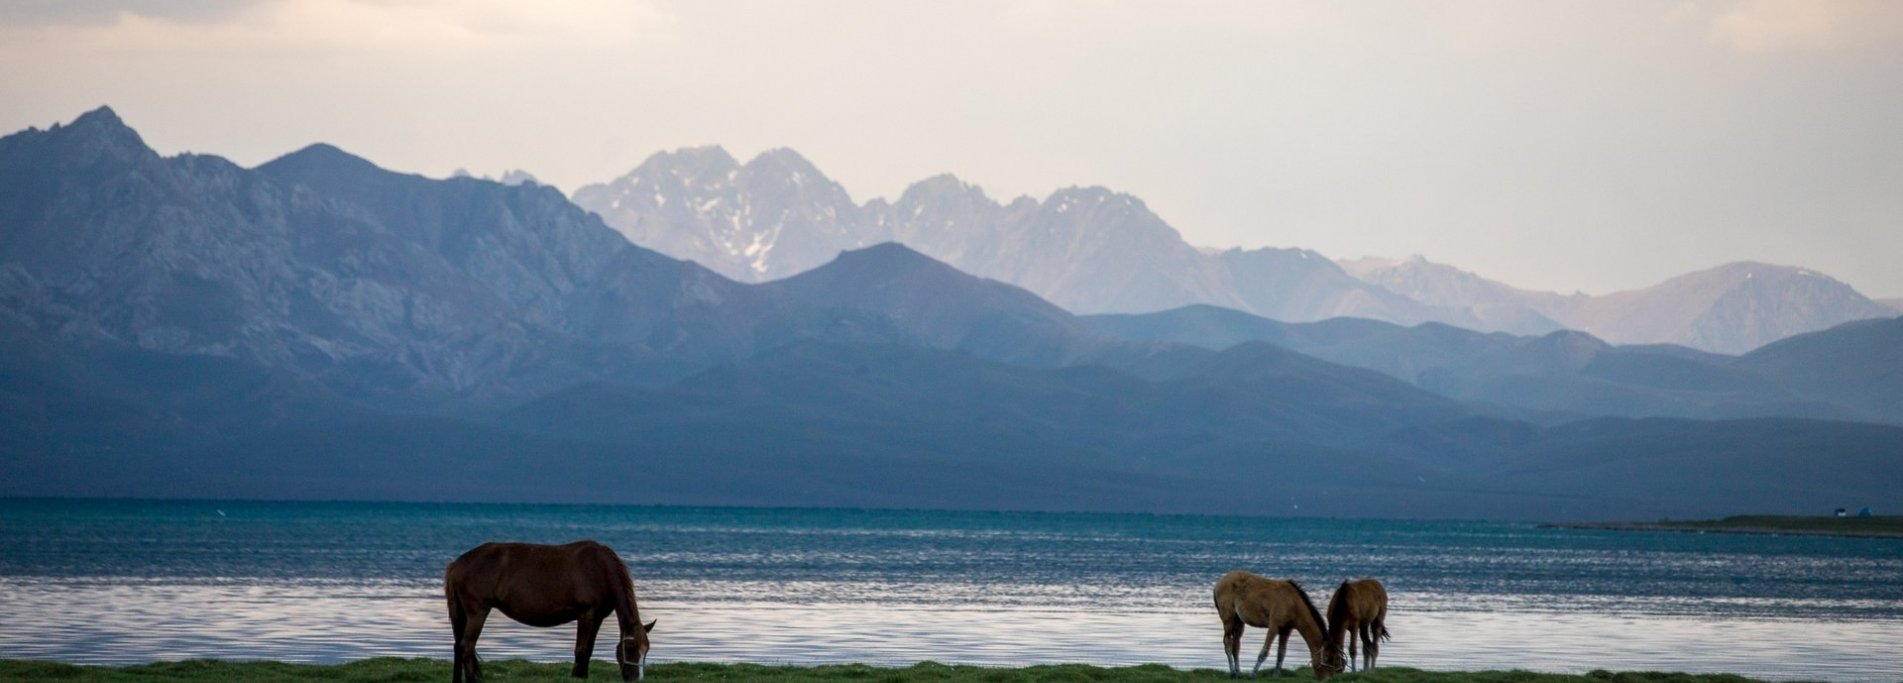 Horseback riding tour near Lake Son-Kul - Through the most beautiful mountain spaces